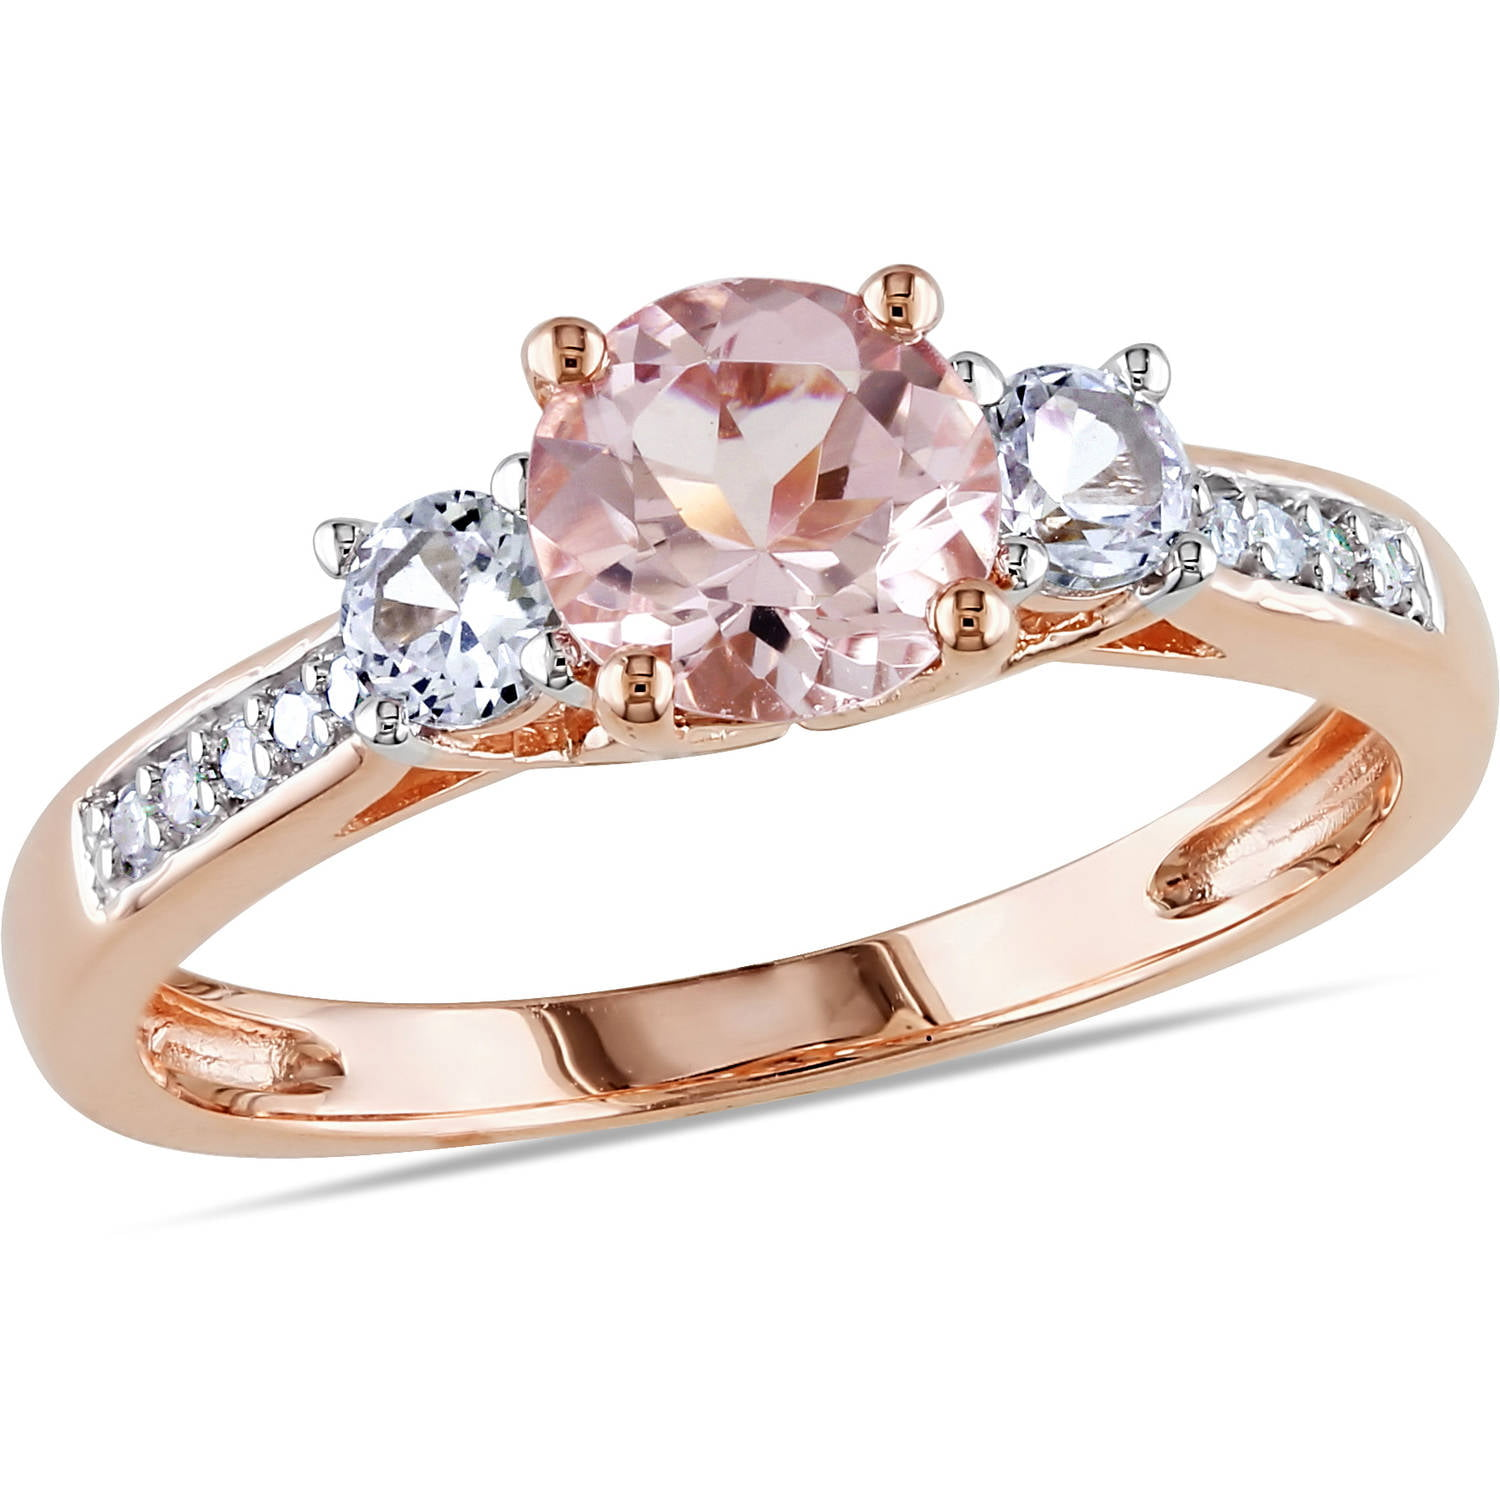 fmt stacks hei rings sapphires id s in ed fit constrain palomas paloma gold sugar jewelry pink rose with wid m ring